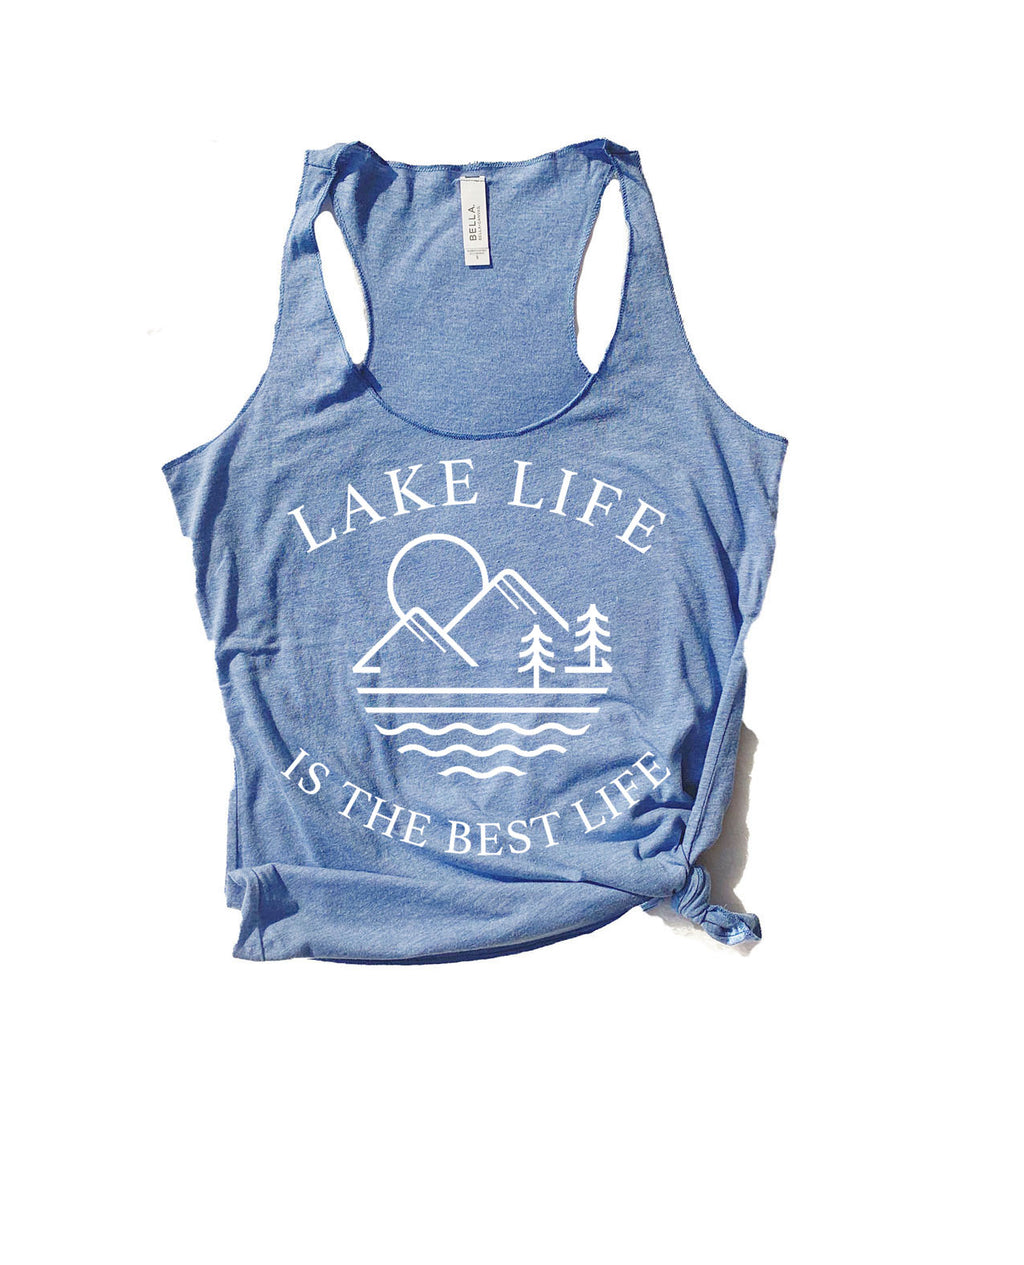 Relax on the lake this summer in our super soft Lake Life tank top! Perfect for any lake lover, whether it's for a weekend trip or a family vacation this is the perfect lake life tee!